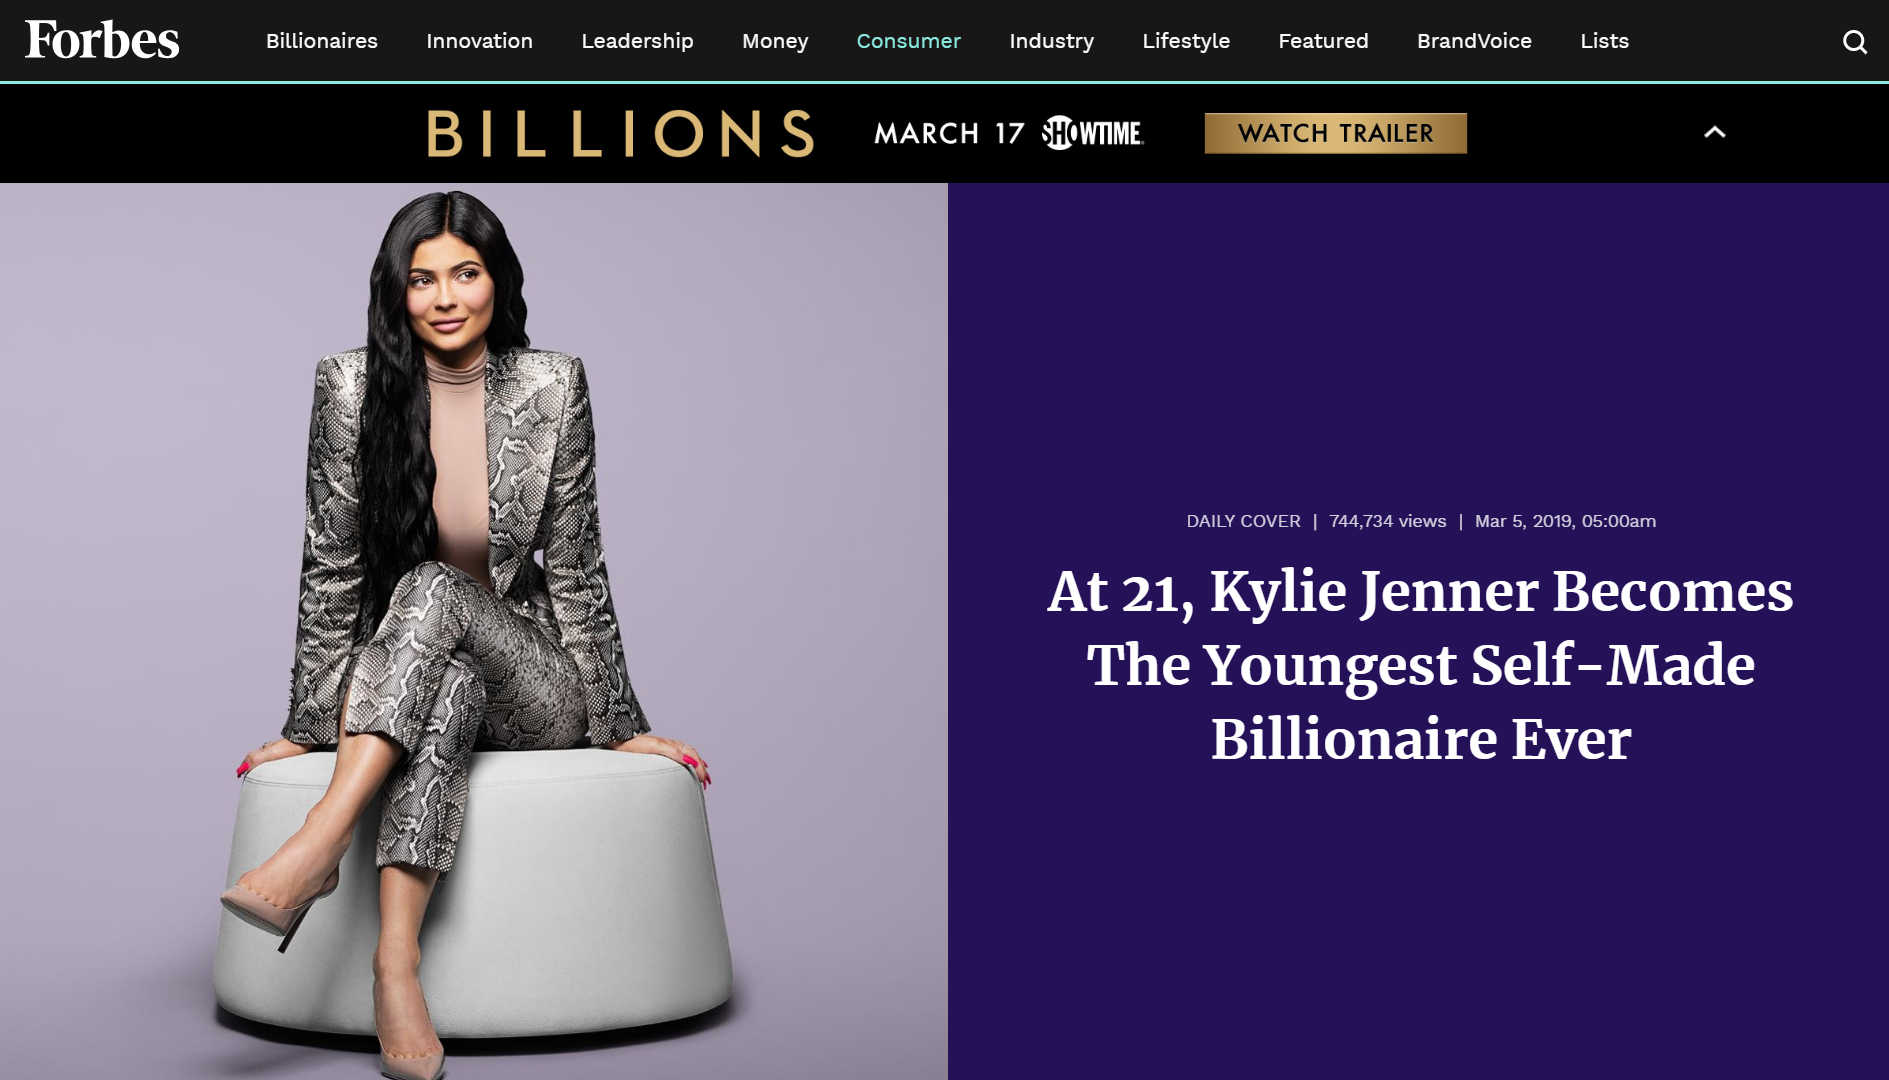 At 21, Kylie Jenner Becomes The Youngest Self-Made Billionaire Ever